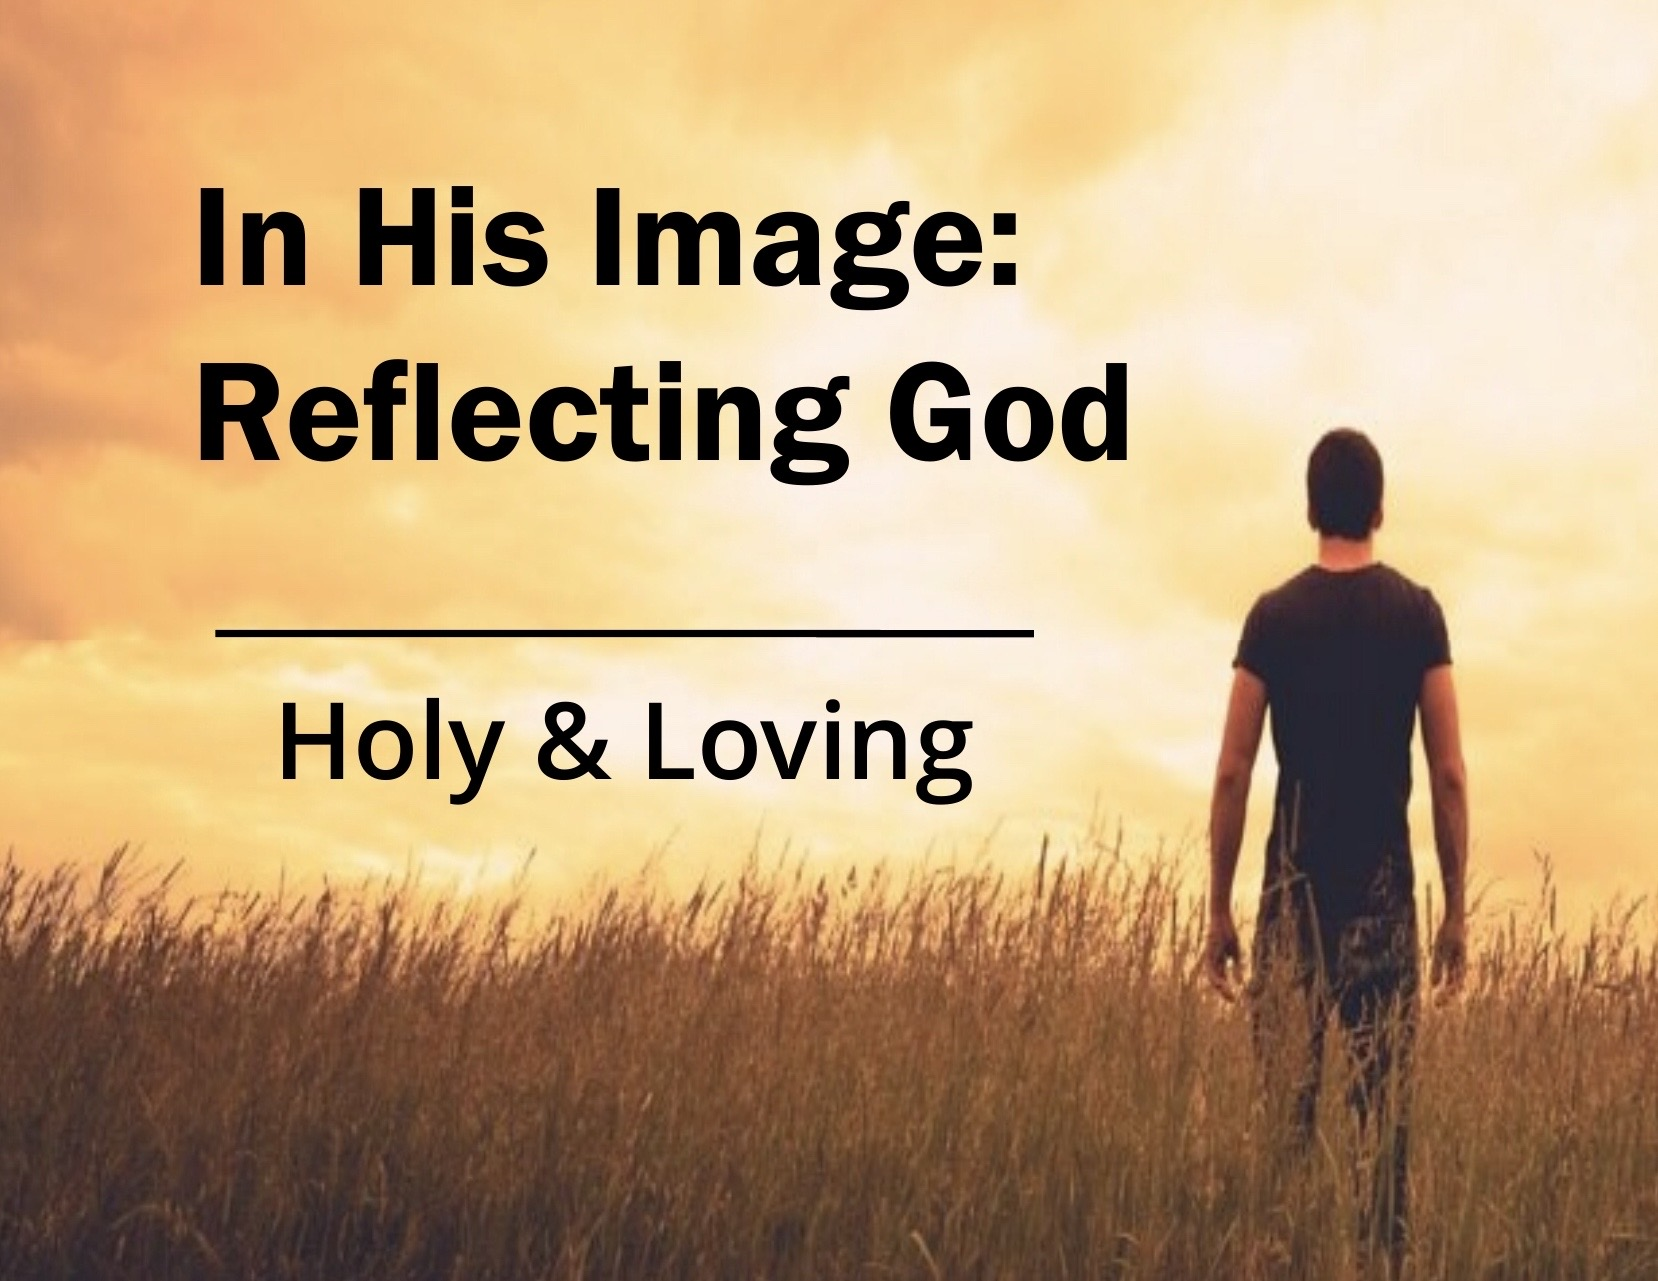 In His Image: Holy & Loving Image